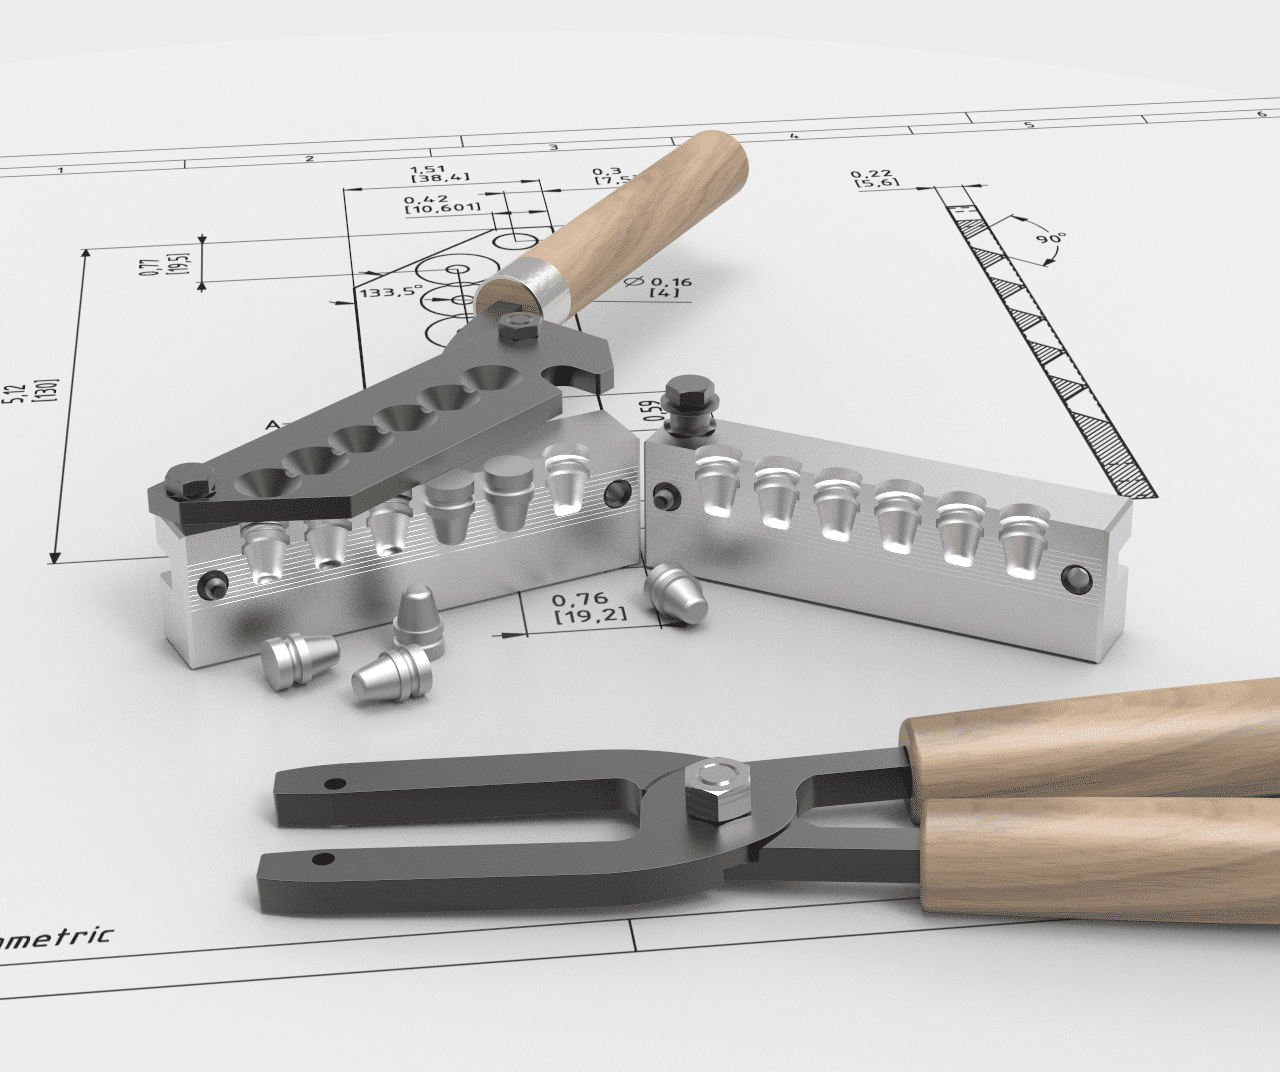 Mp molds 6cavity mold with bullet mold handles